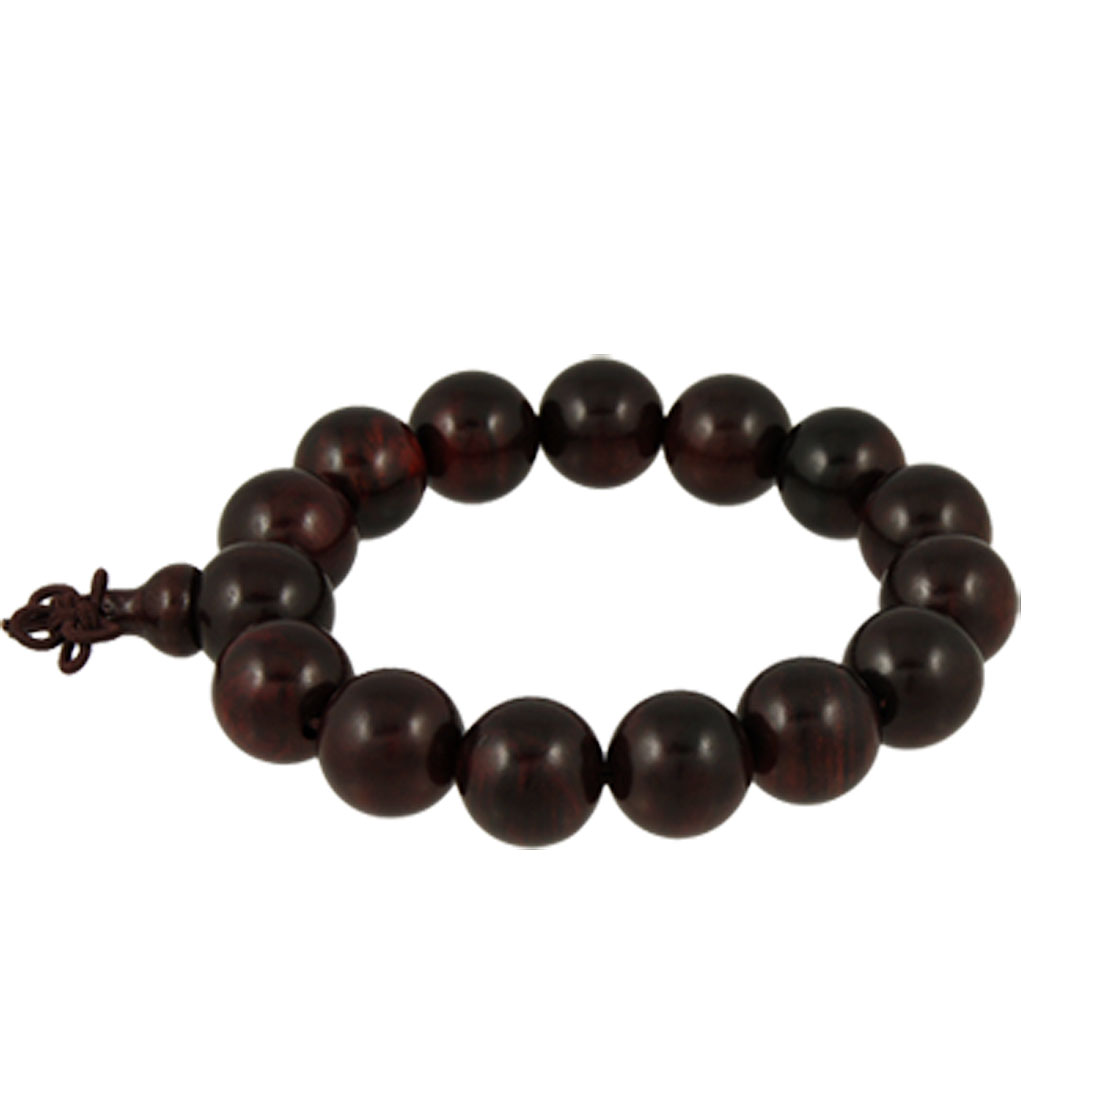 Brown Wood Made Round Beads Prayers Bracelet Ornament w Gourd Pendant